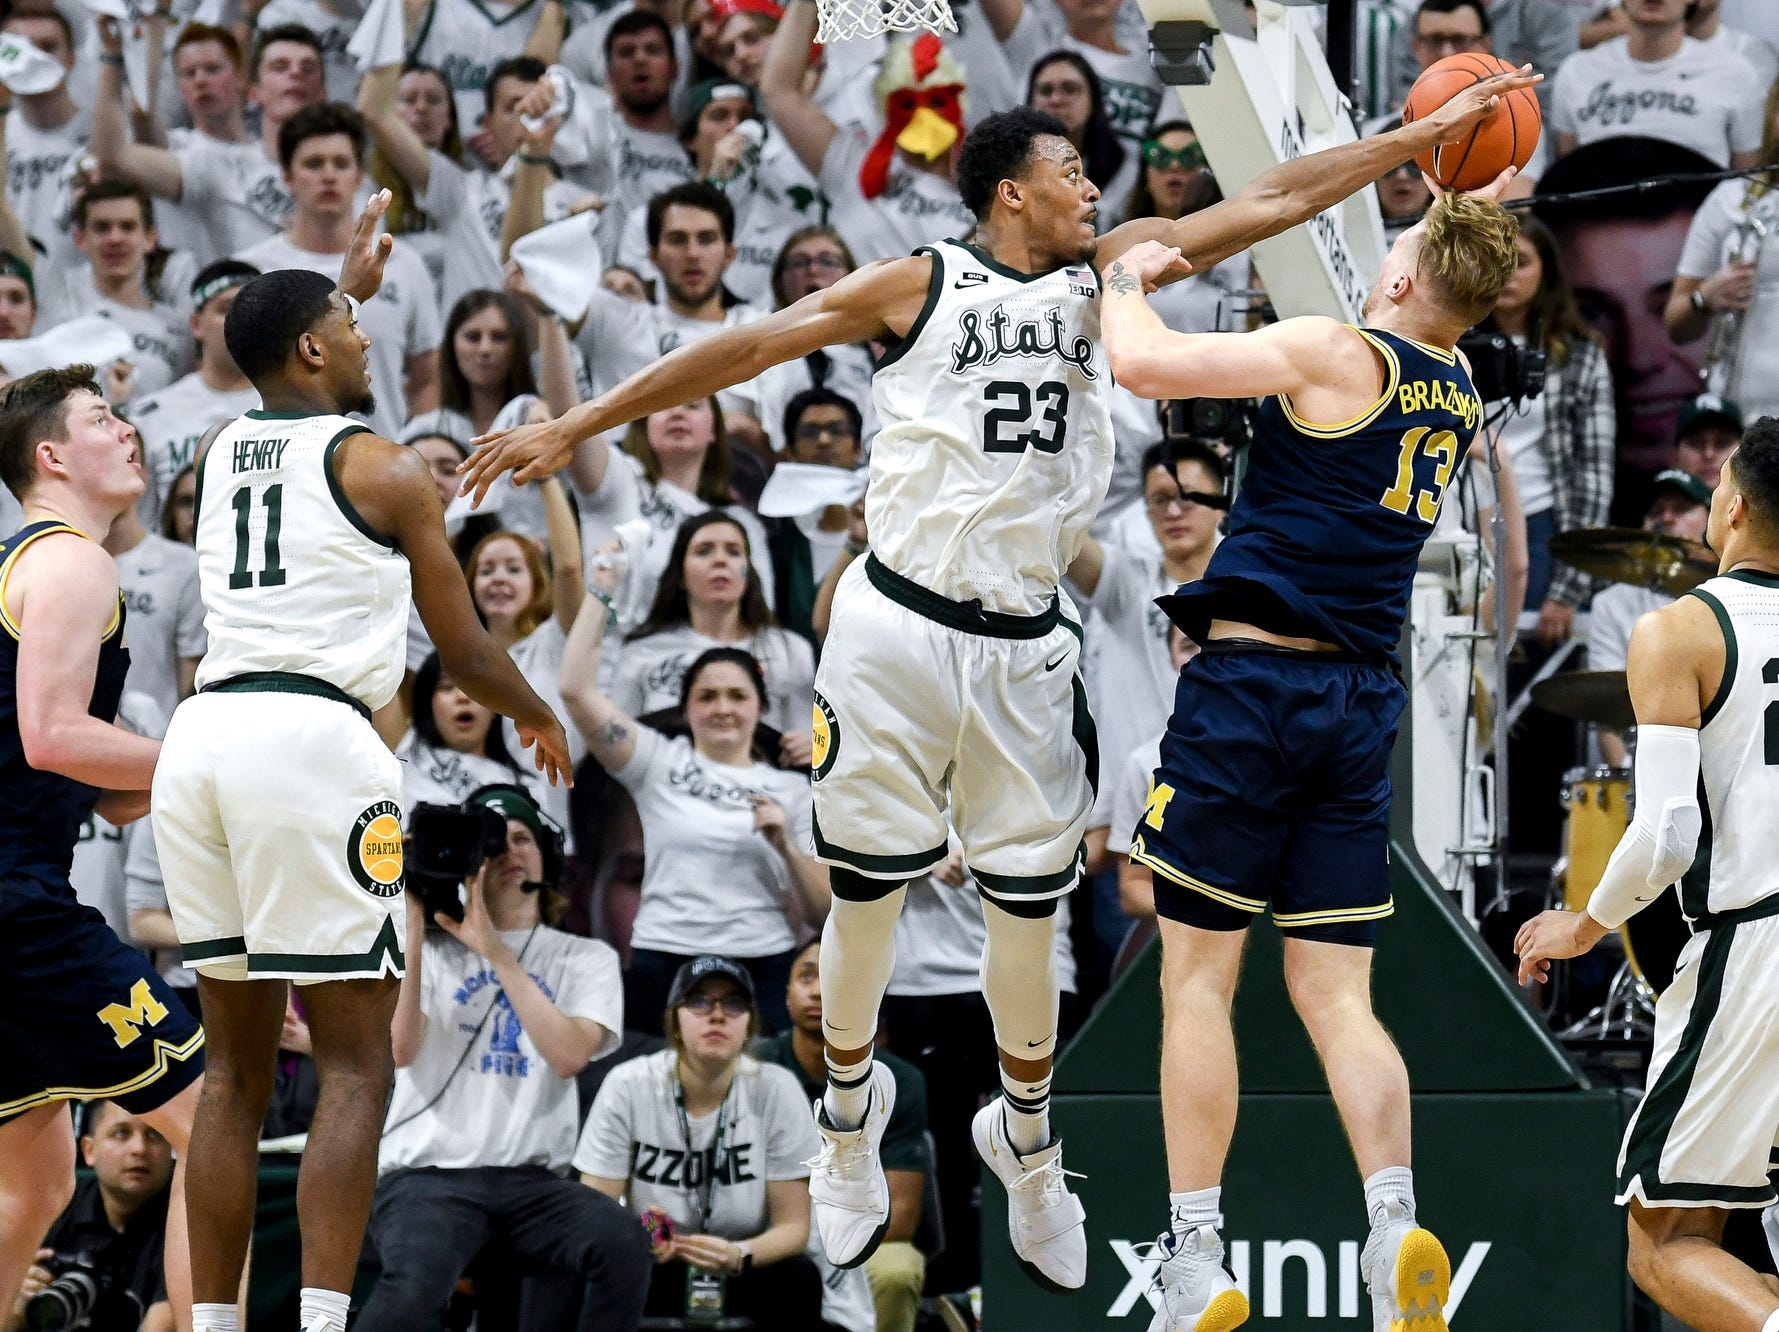 Michigan State's Xavier Tillman, left, guards Michigan's Ignas Brazdeikis during the second half on Saturday, March 9, 2019, at the Breslin Center in East Lansing.